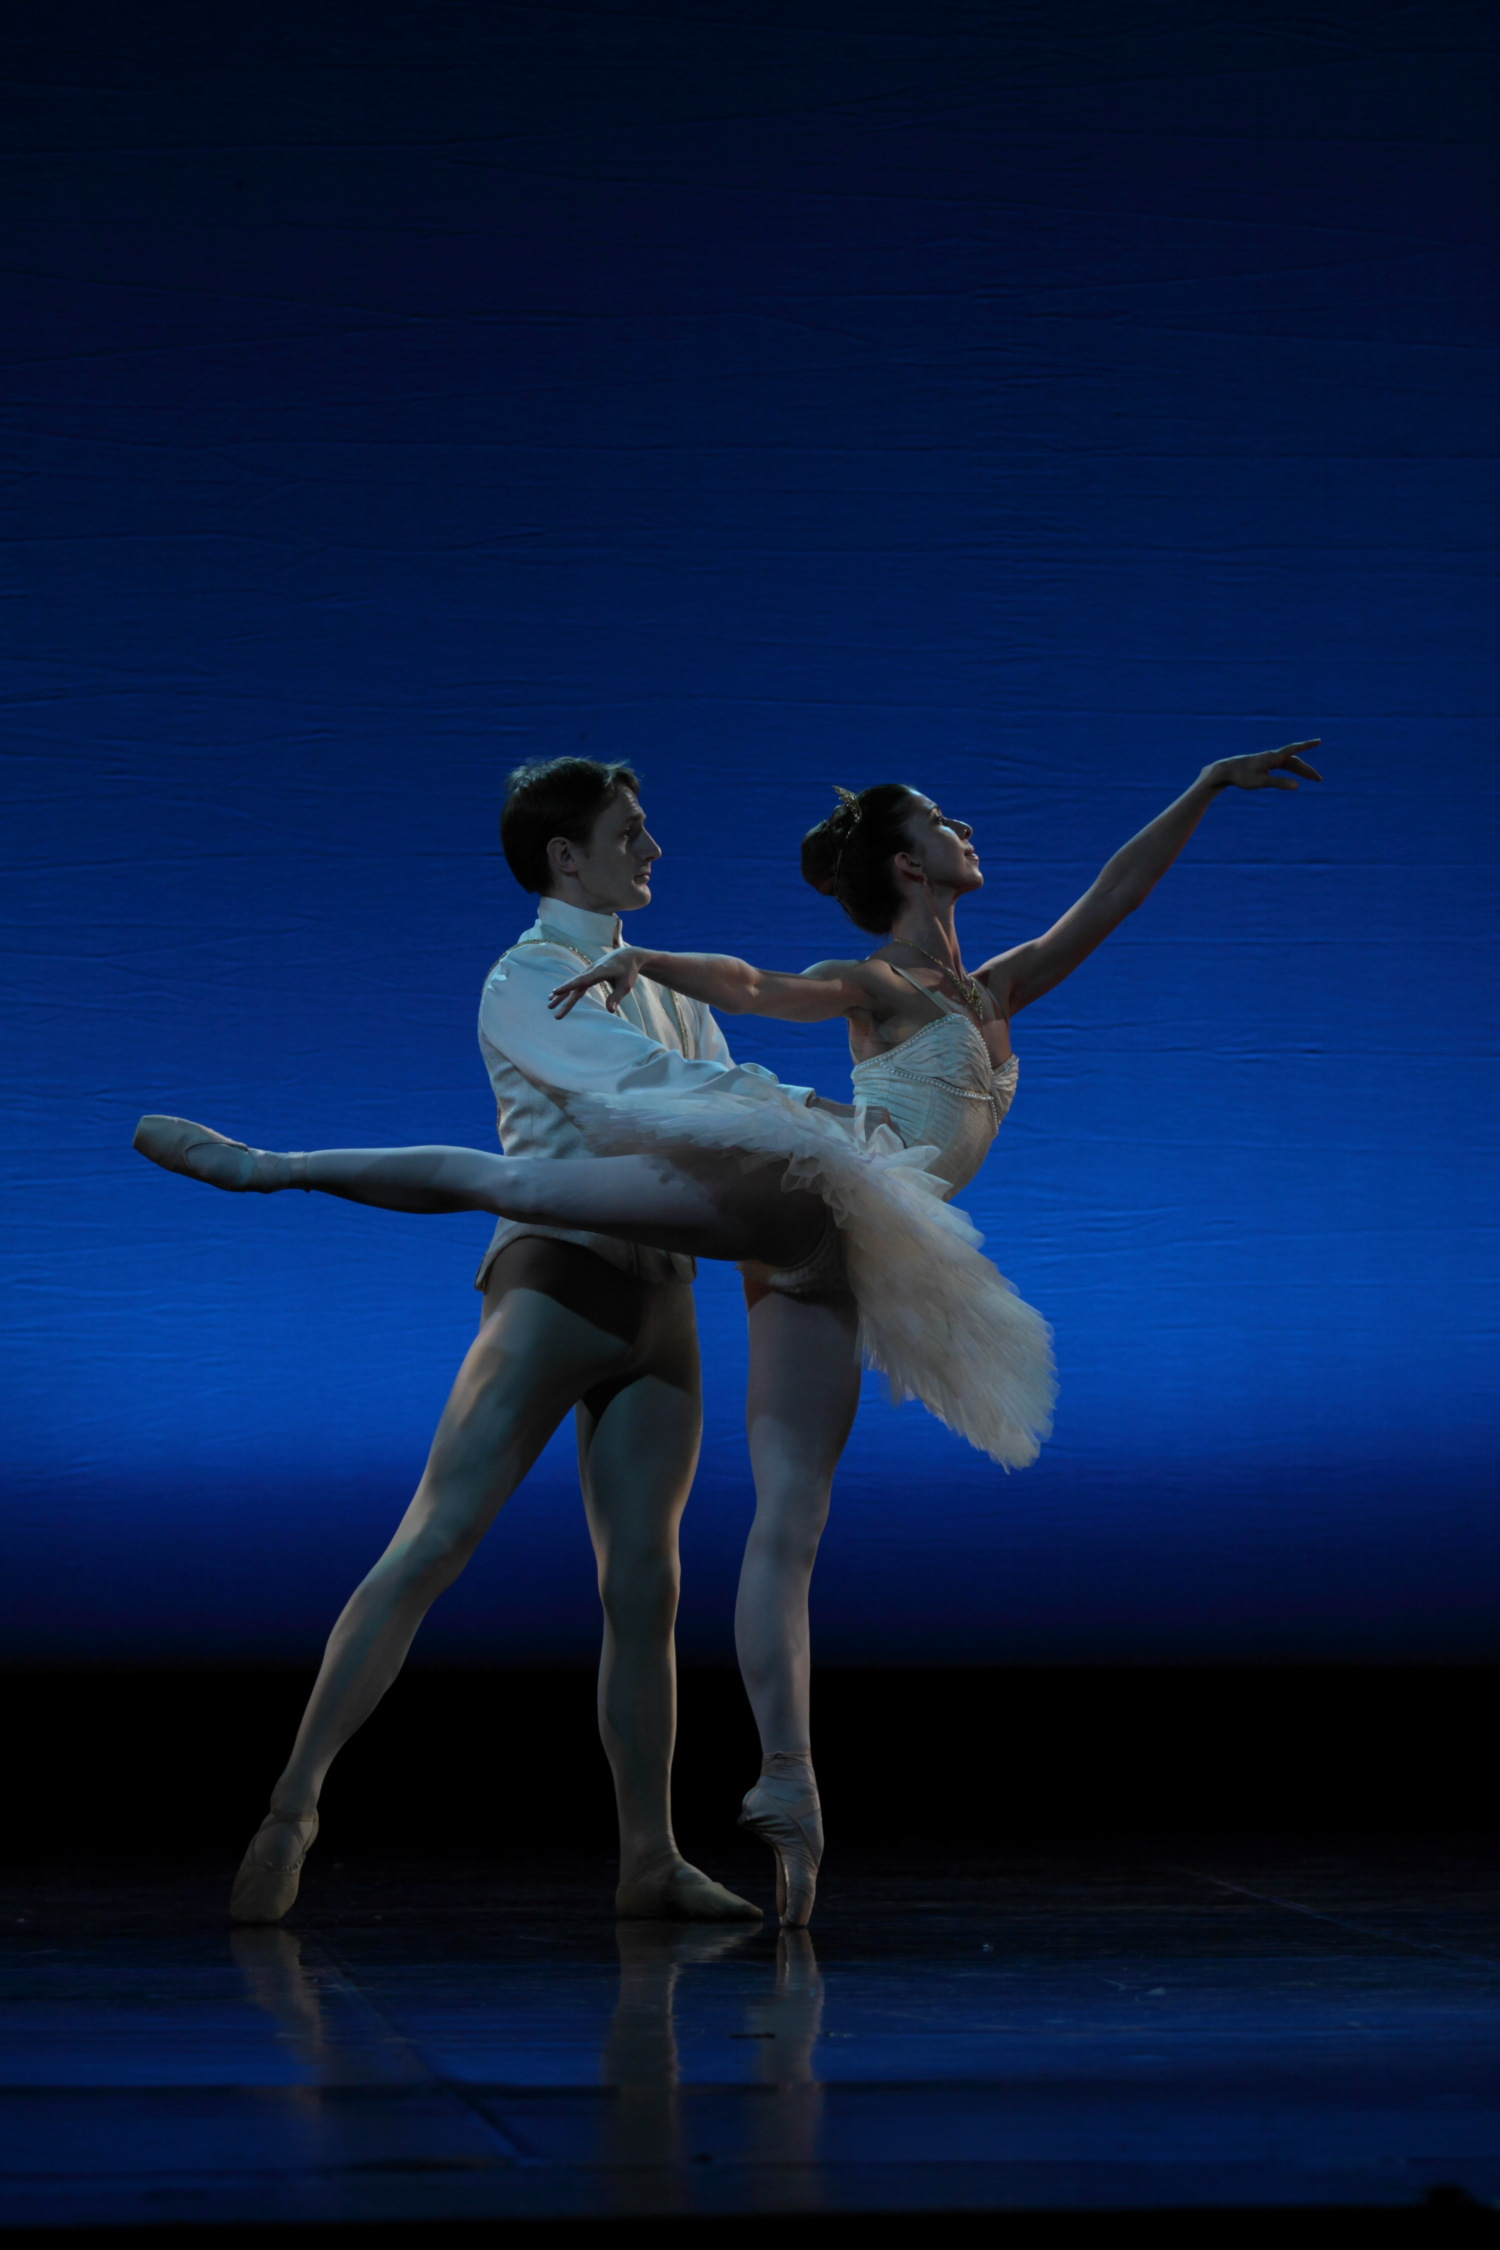 two ballet dancers in white on stage